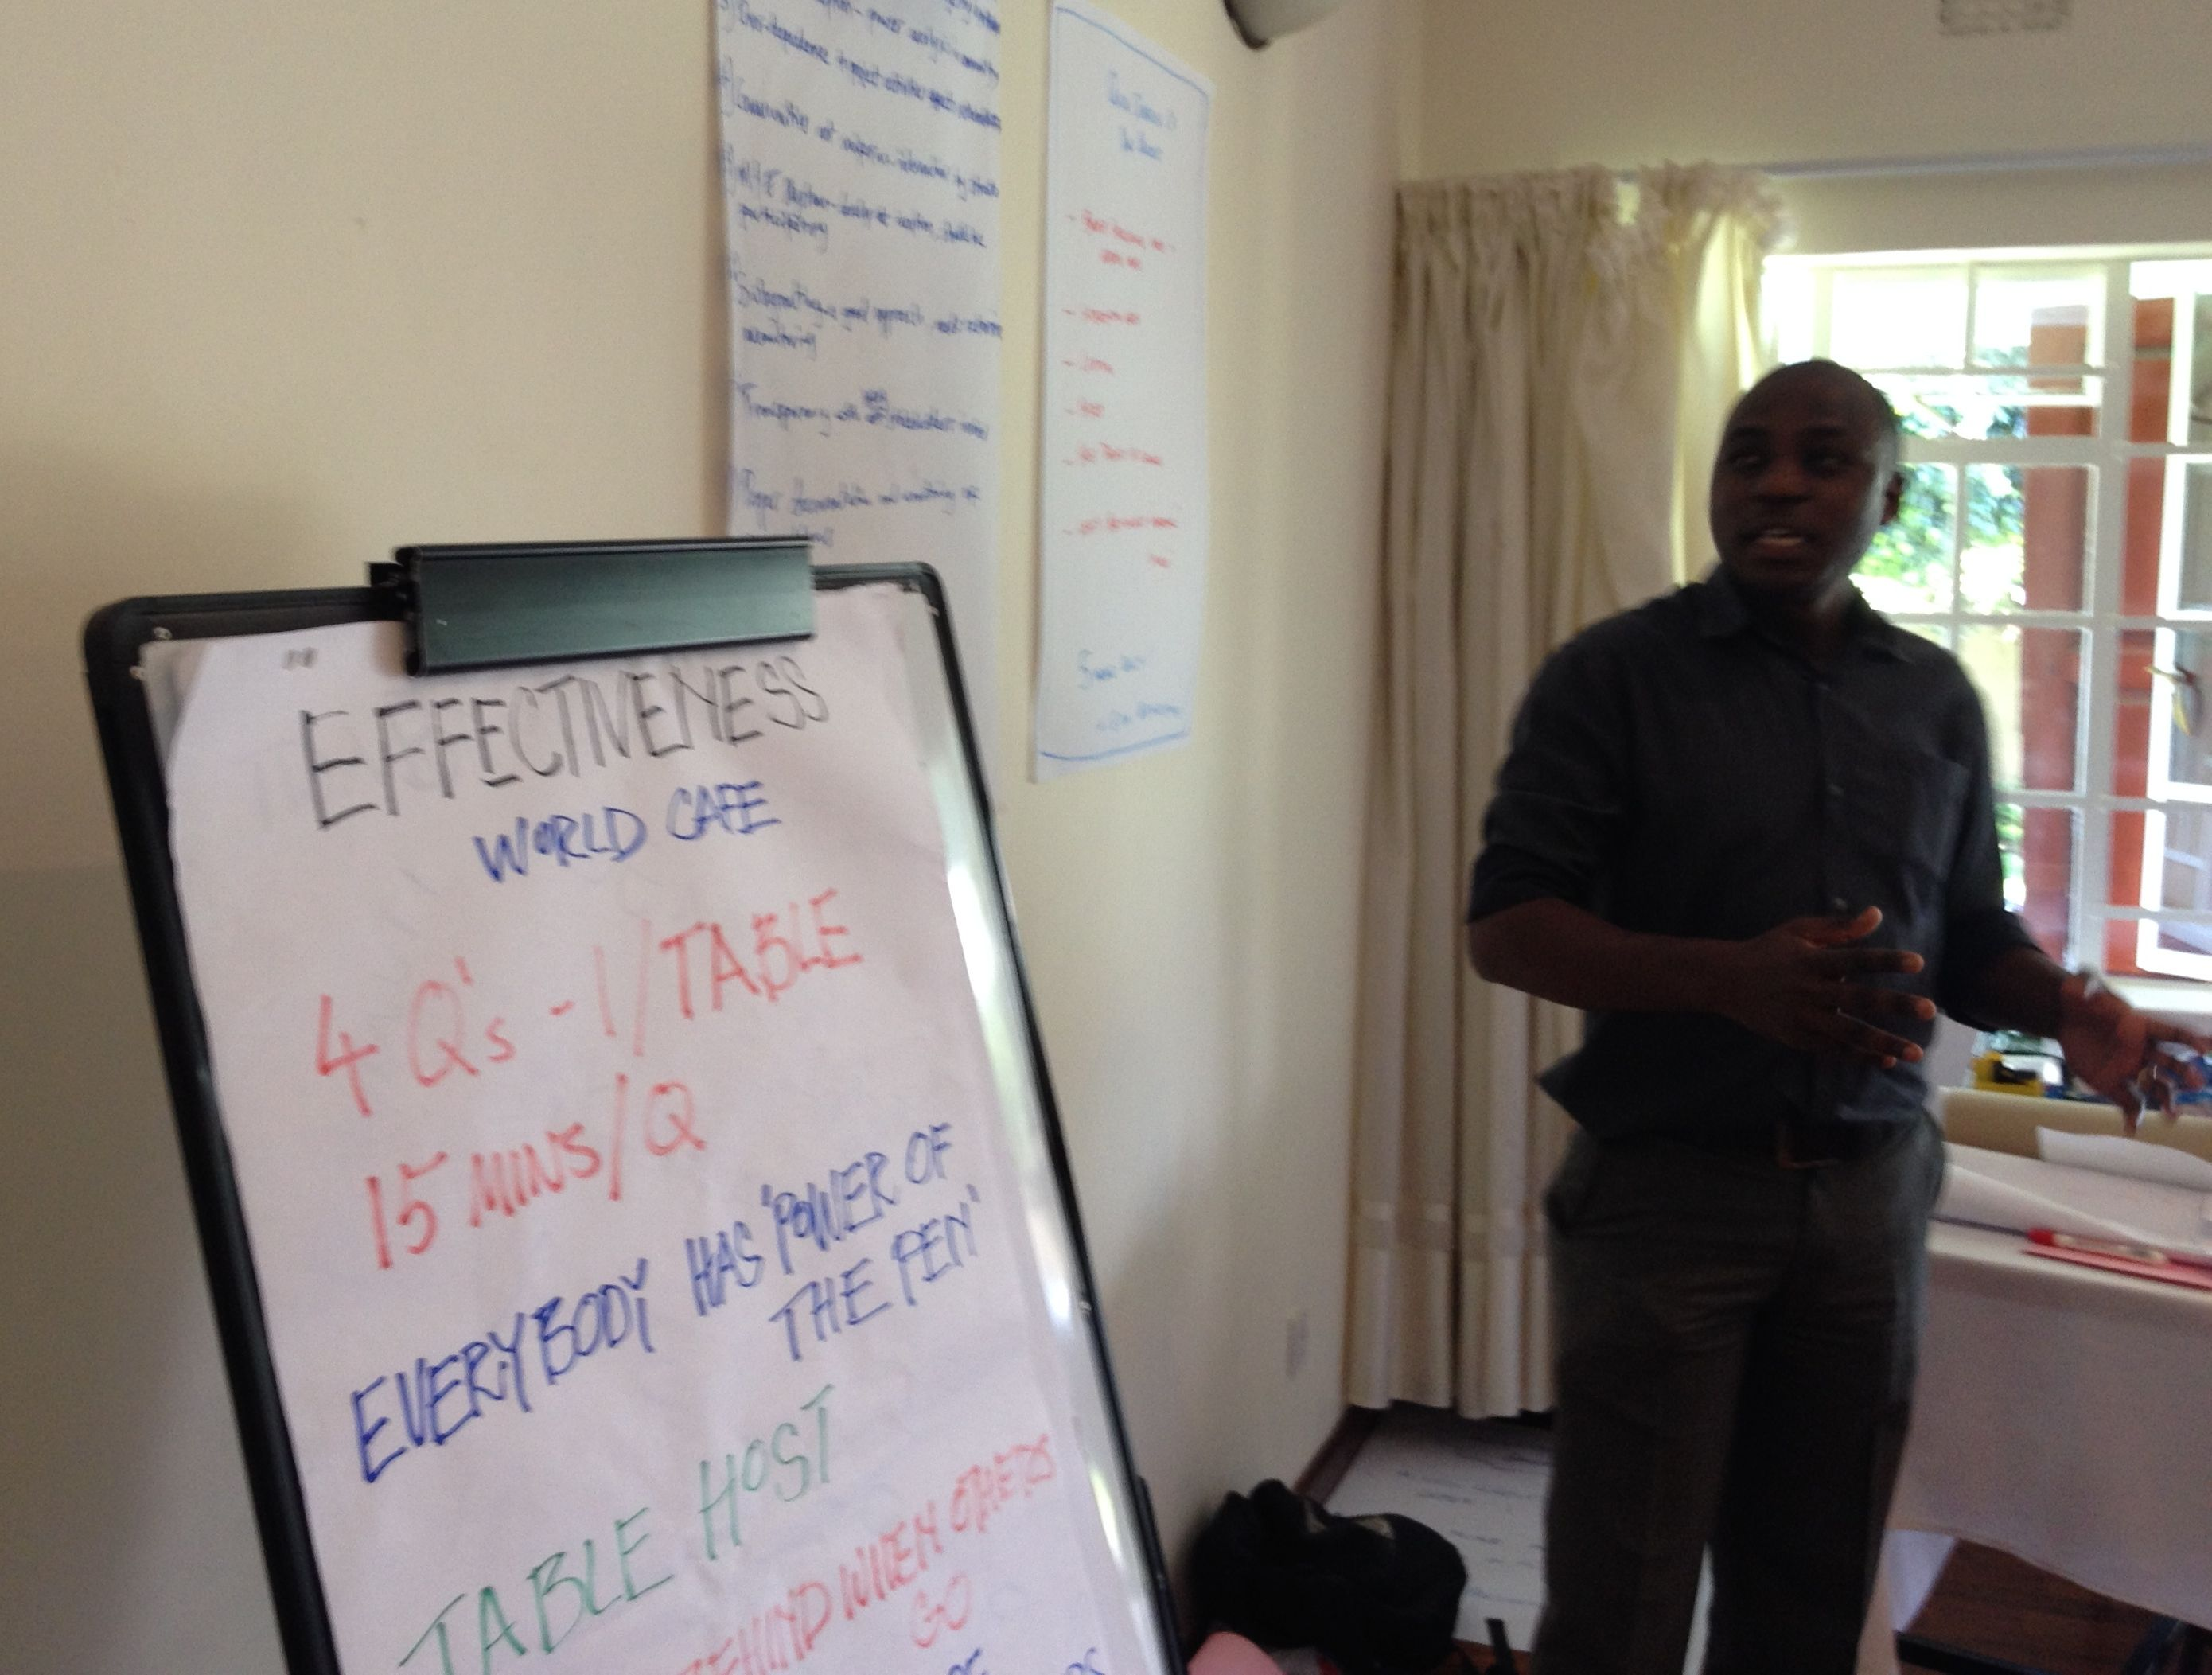 Tenthema (of the sugar out growers capacity building project) giving the discussion summary of the Effectiveness Successes World Cafe table.